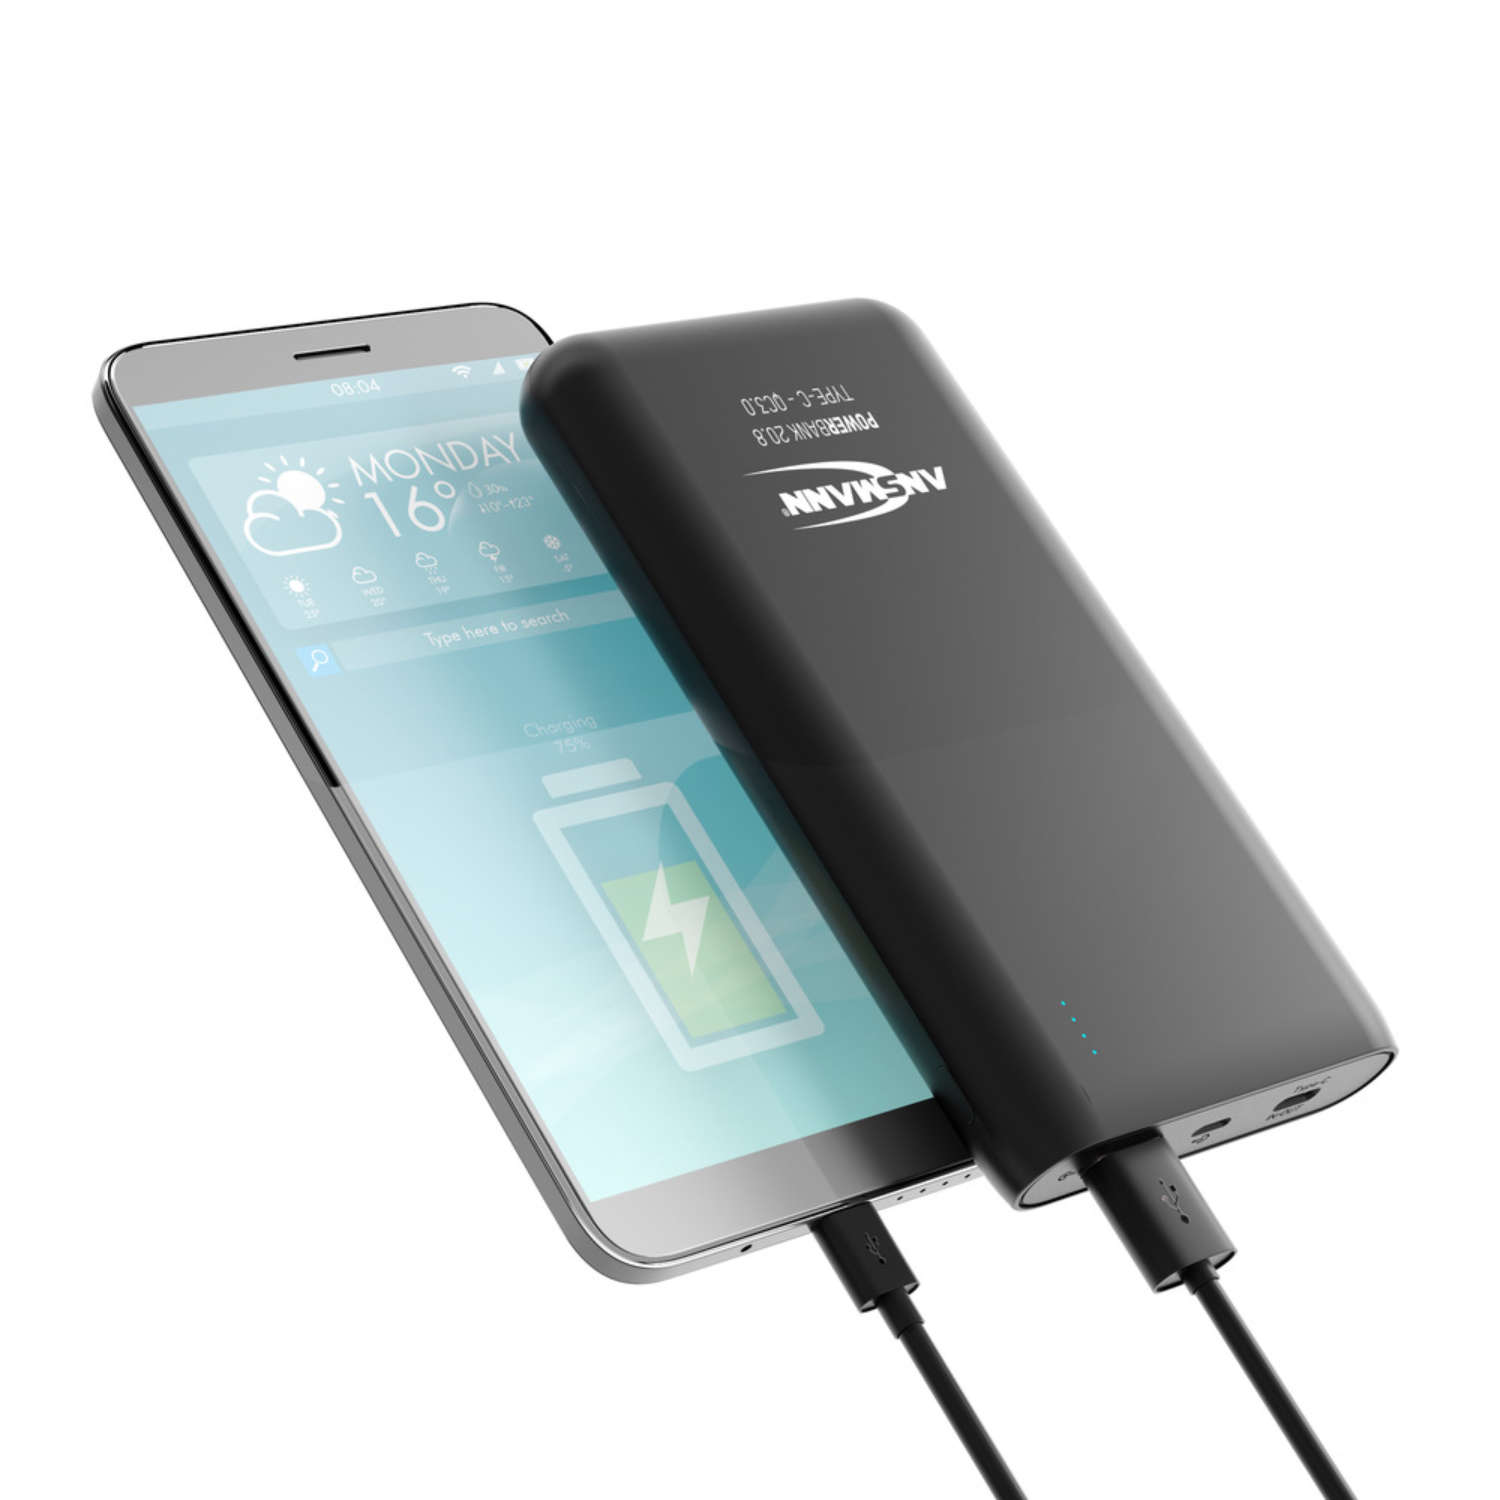 1700-0097_Powerbank_20.8_bu_14